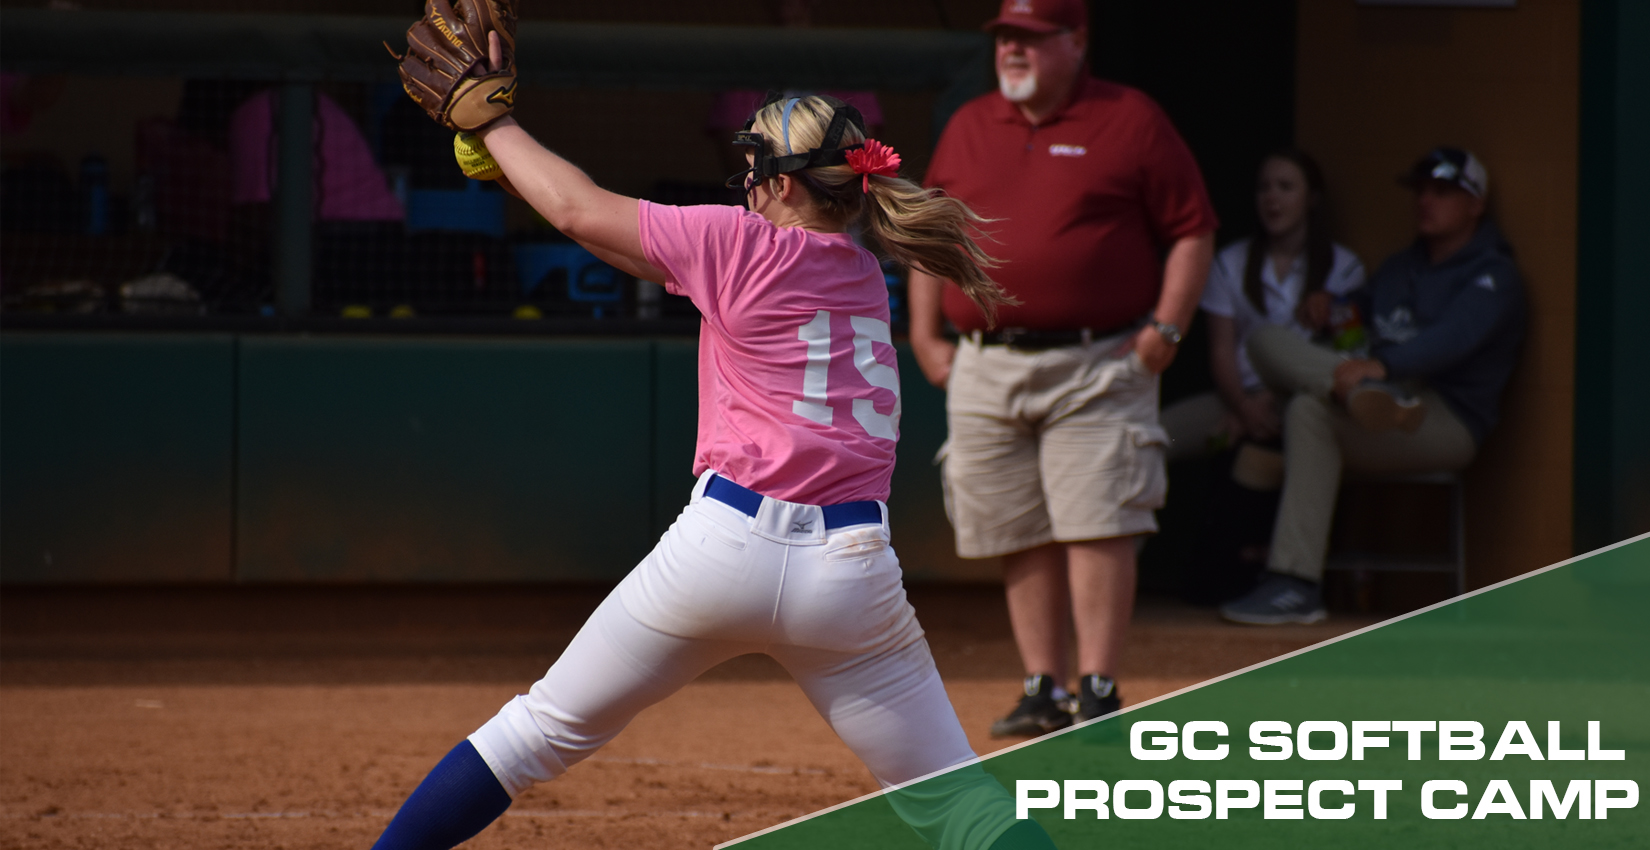 Georgia College Softball to Host One Day Prospect Camp Jan. 13